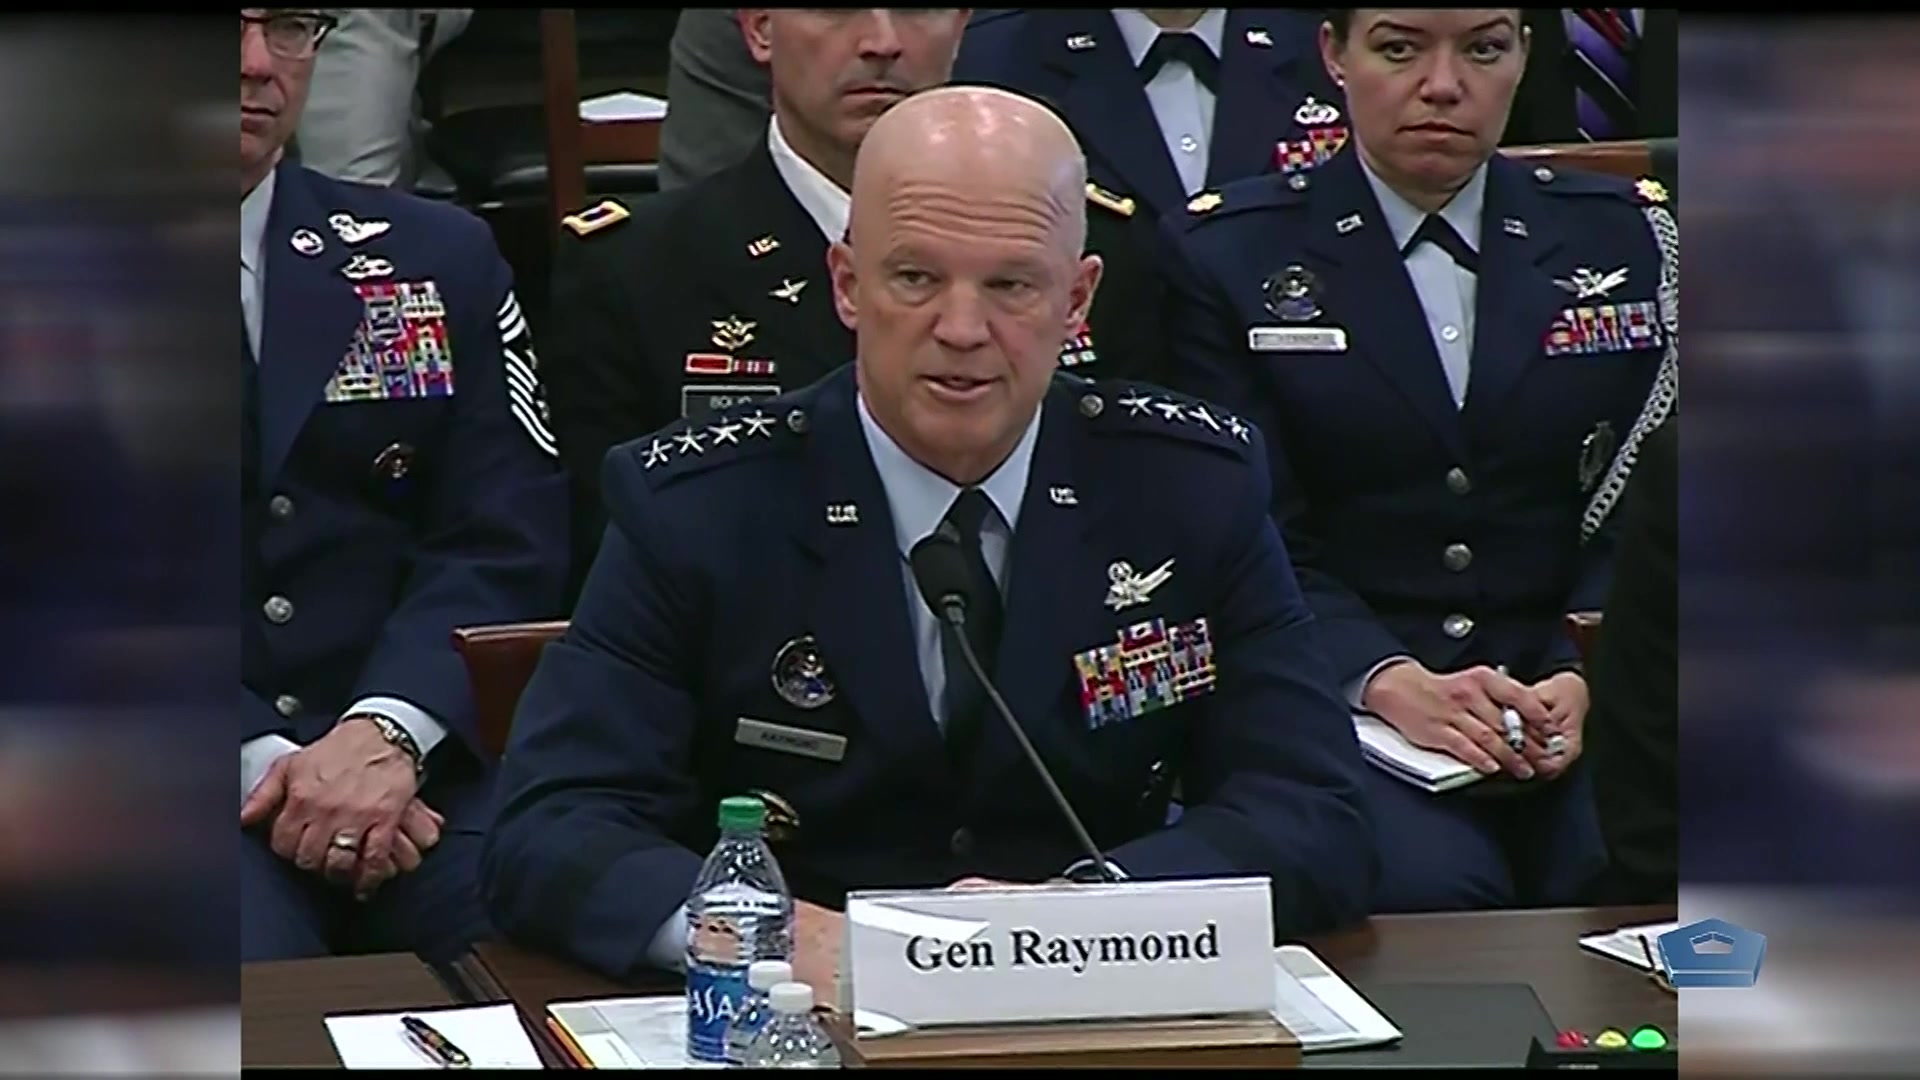 A Space Force general sits at a table and speaks.